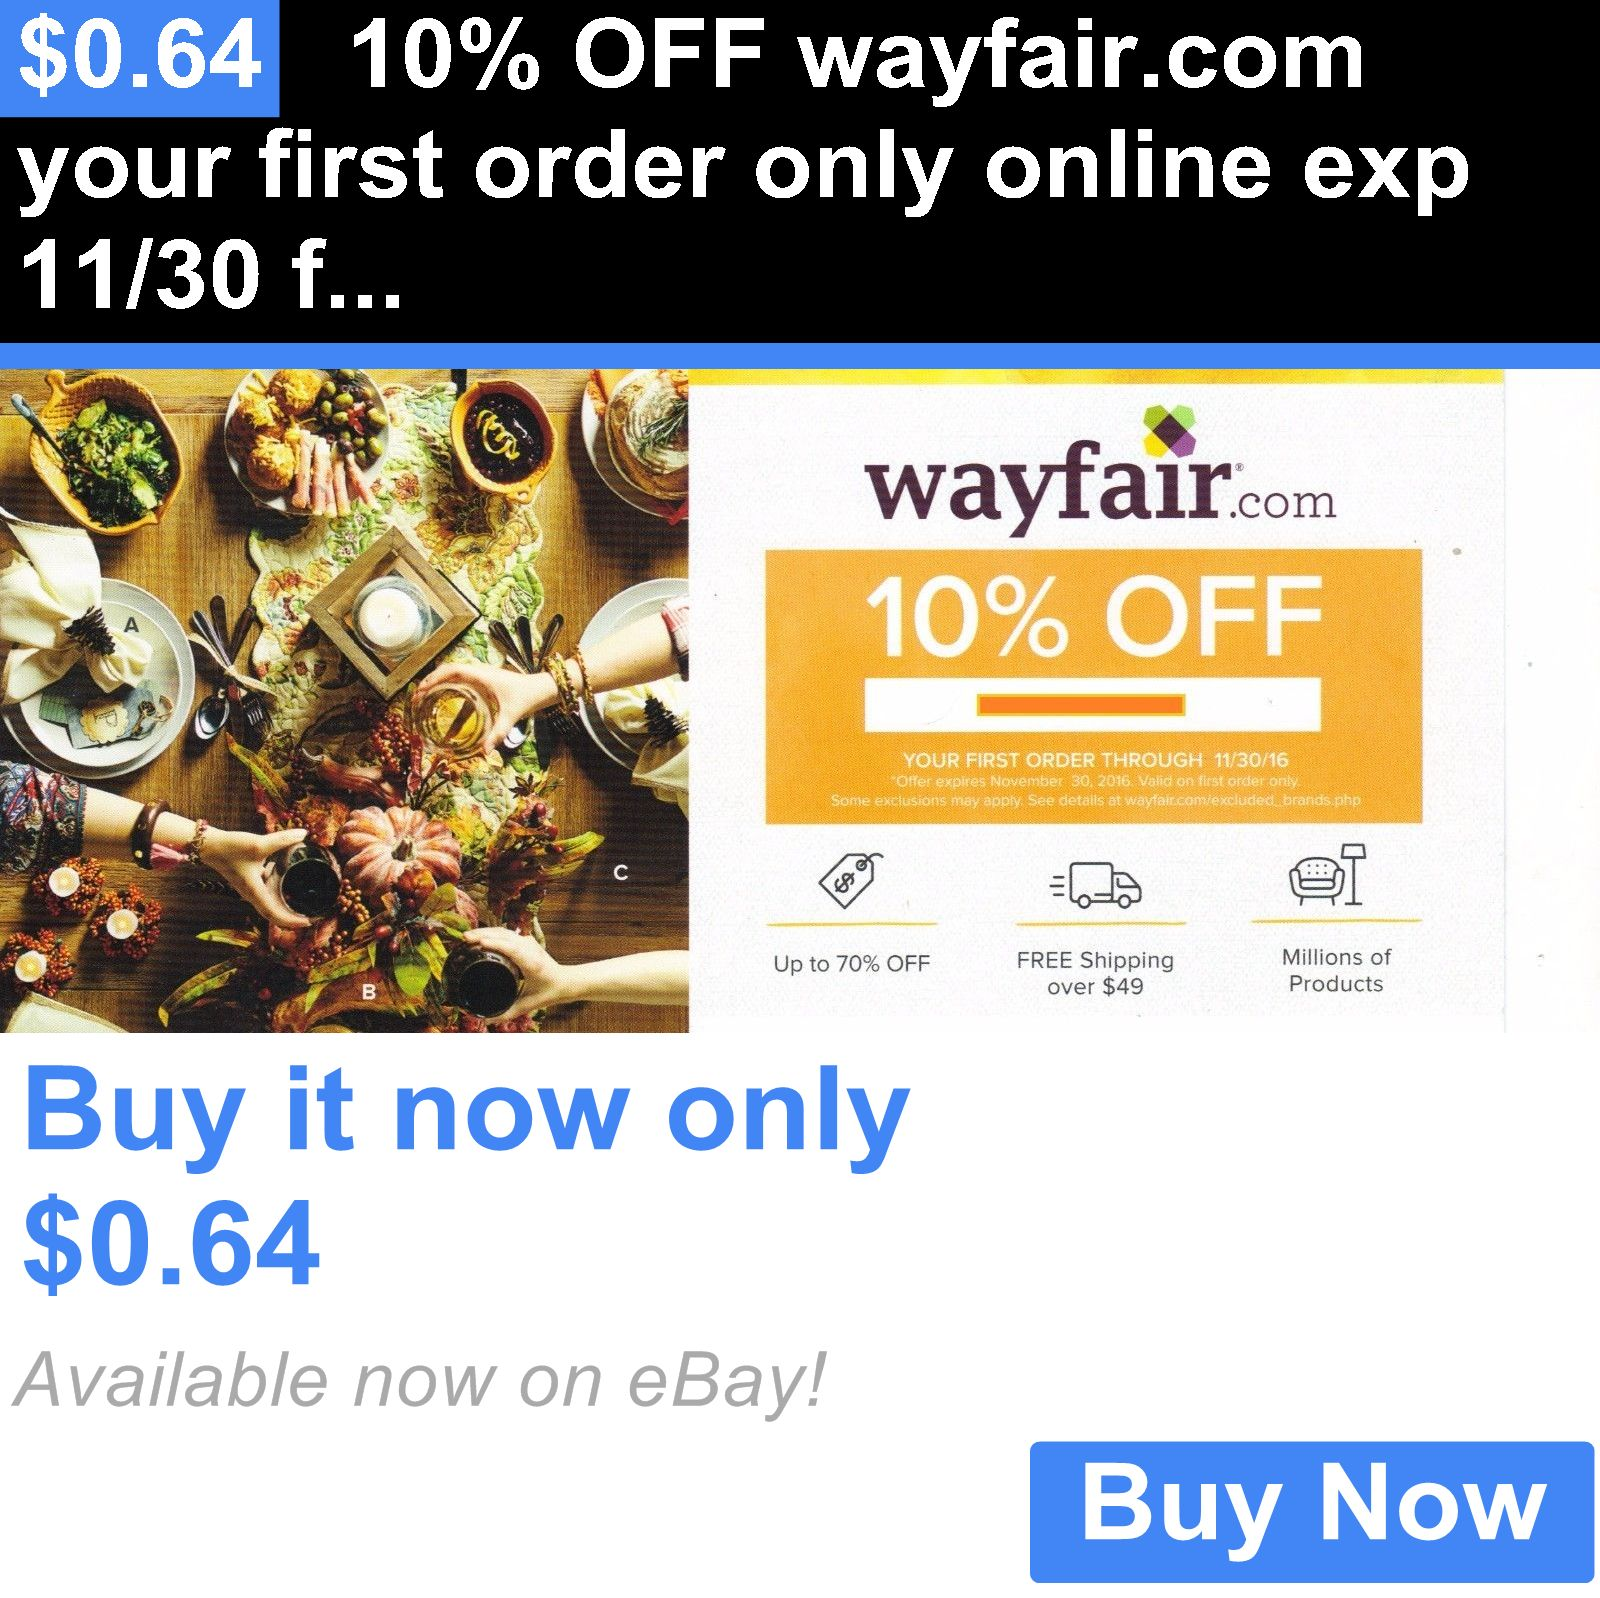 Wayfair 10 off first order - Lowes 10 Off Coupon Save 10 Fast Lowe S 10 Off Entire Order Coupons Pinterest Lowes 10 Off Coupon Lowes And Coupon